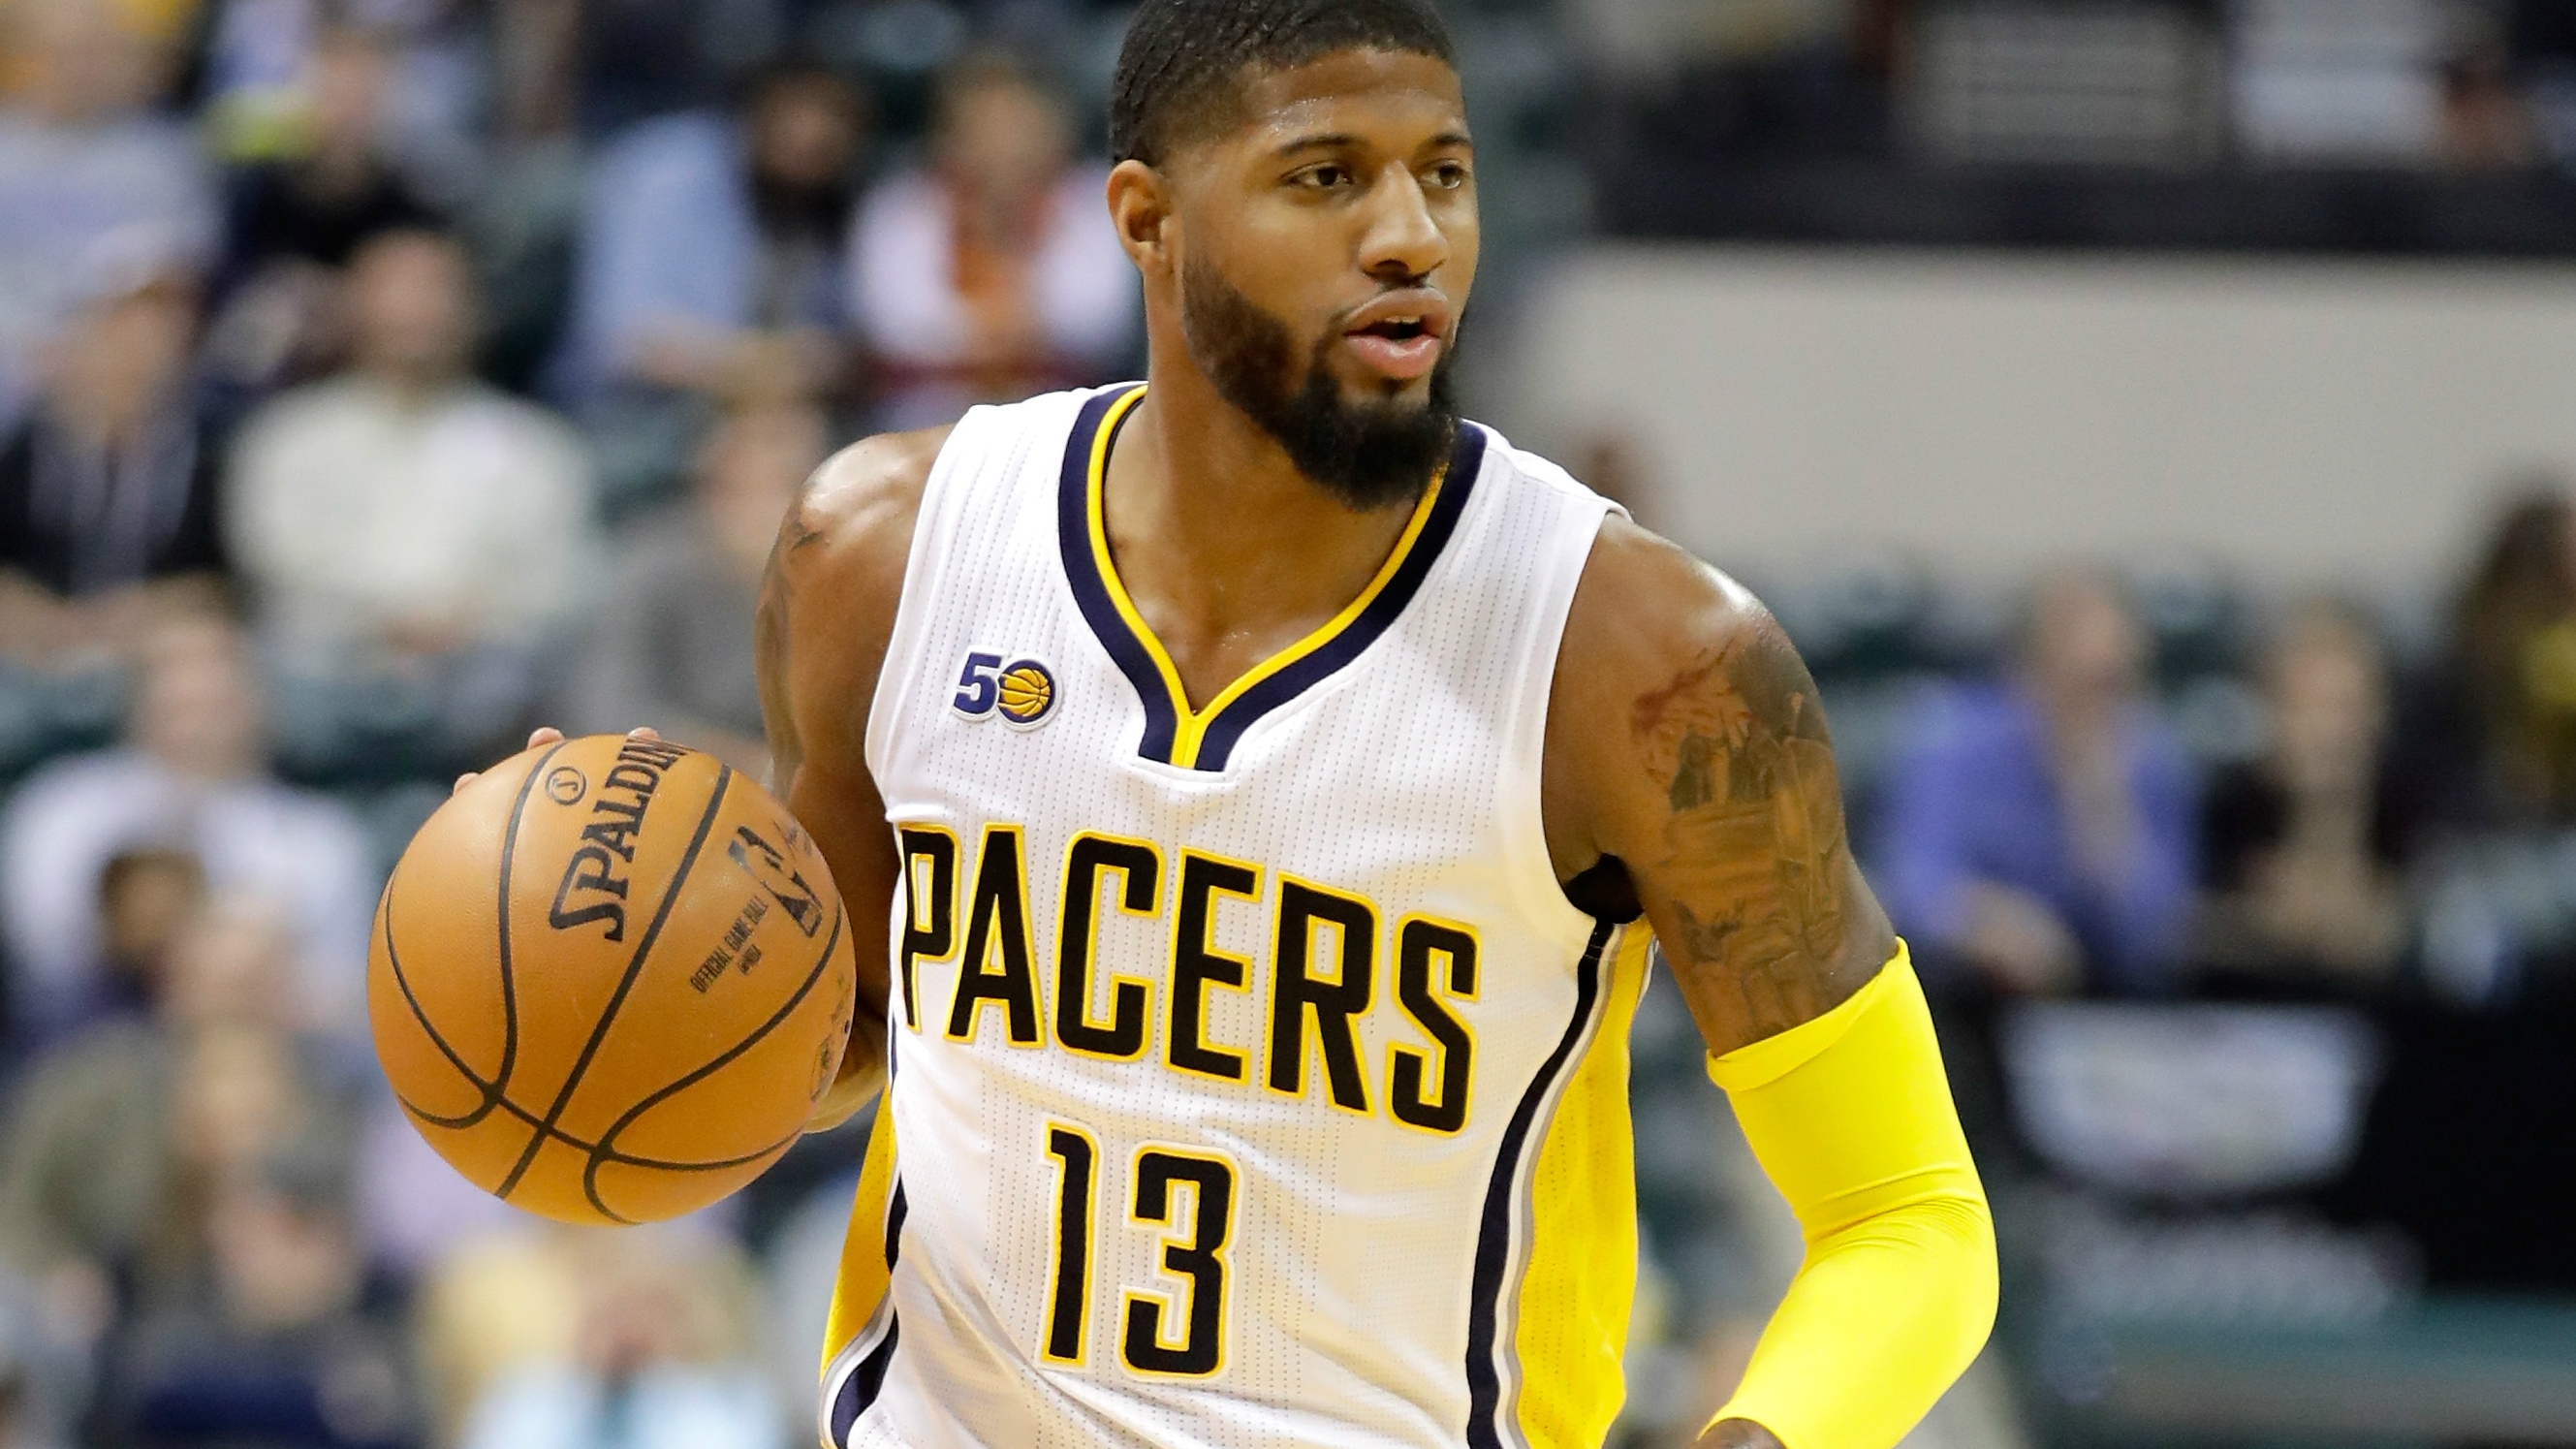 Pacers' Paul George can't wait to rekindle 'special ...